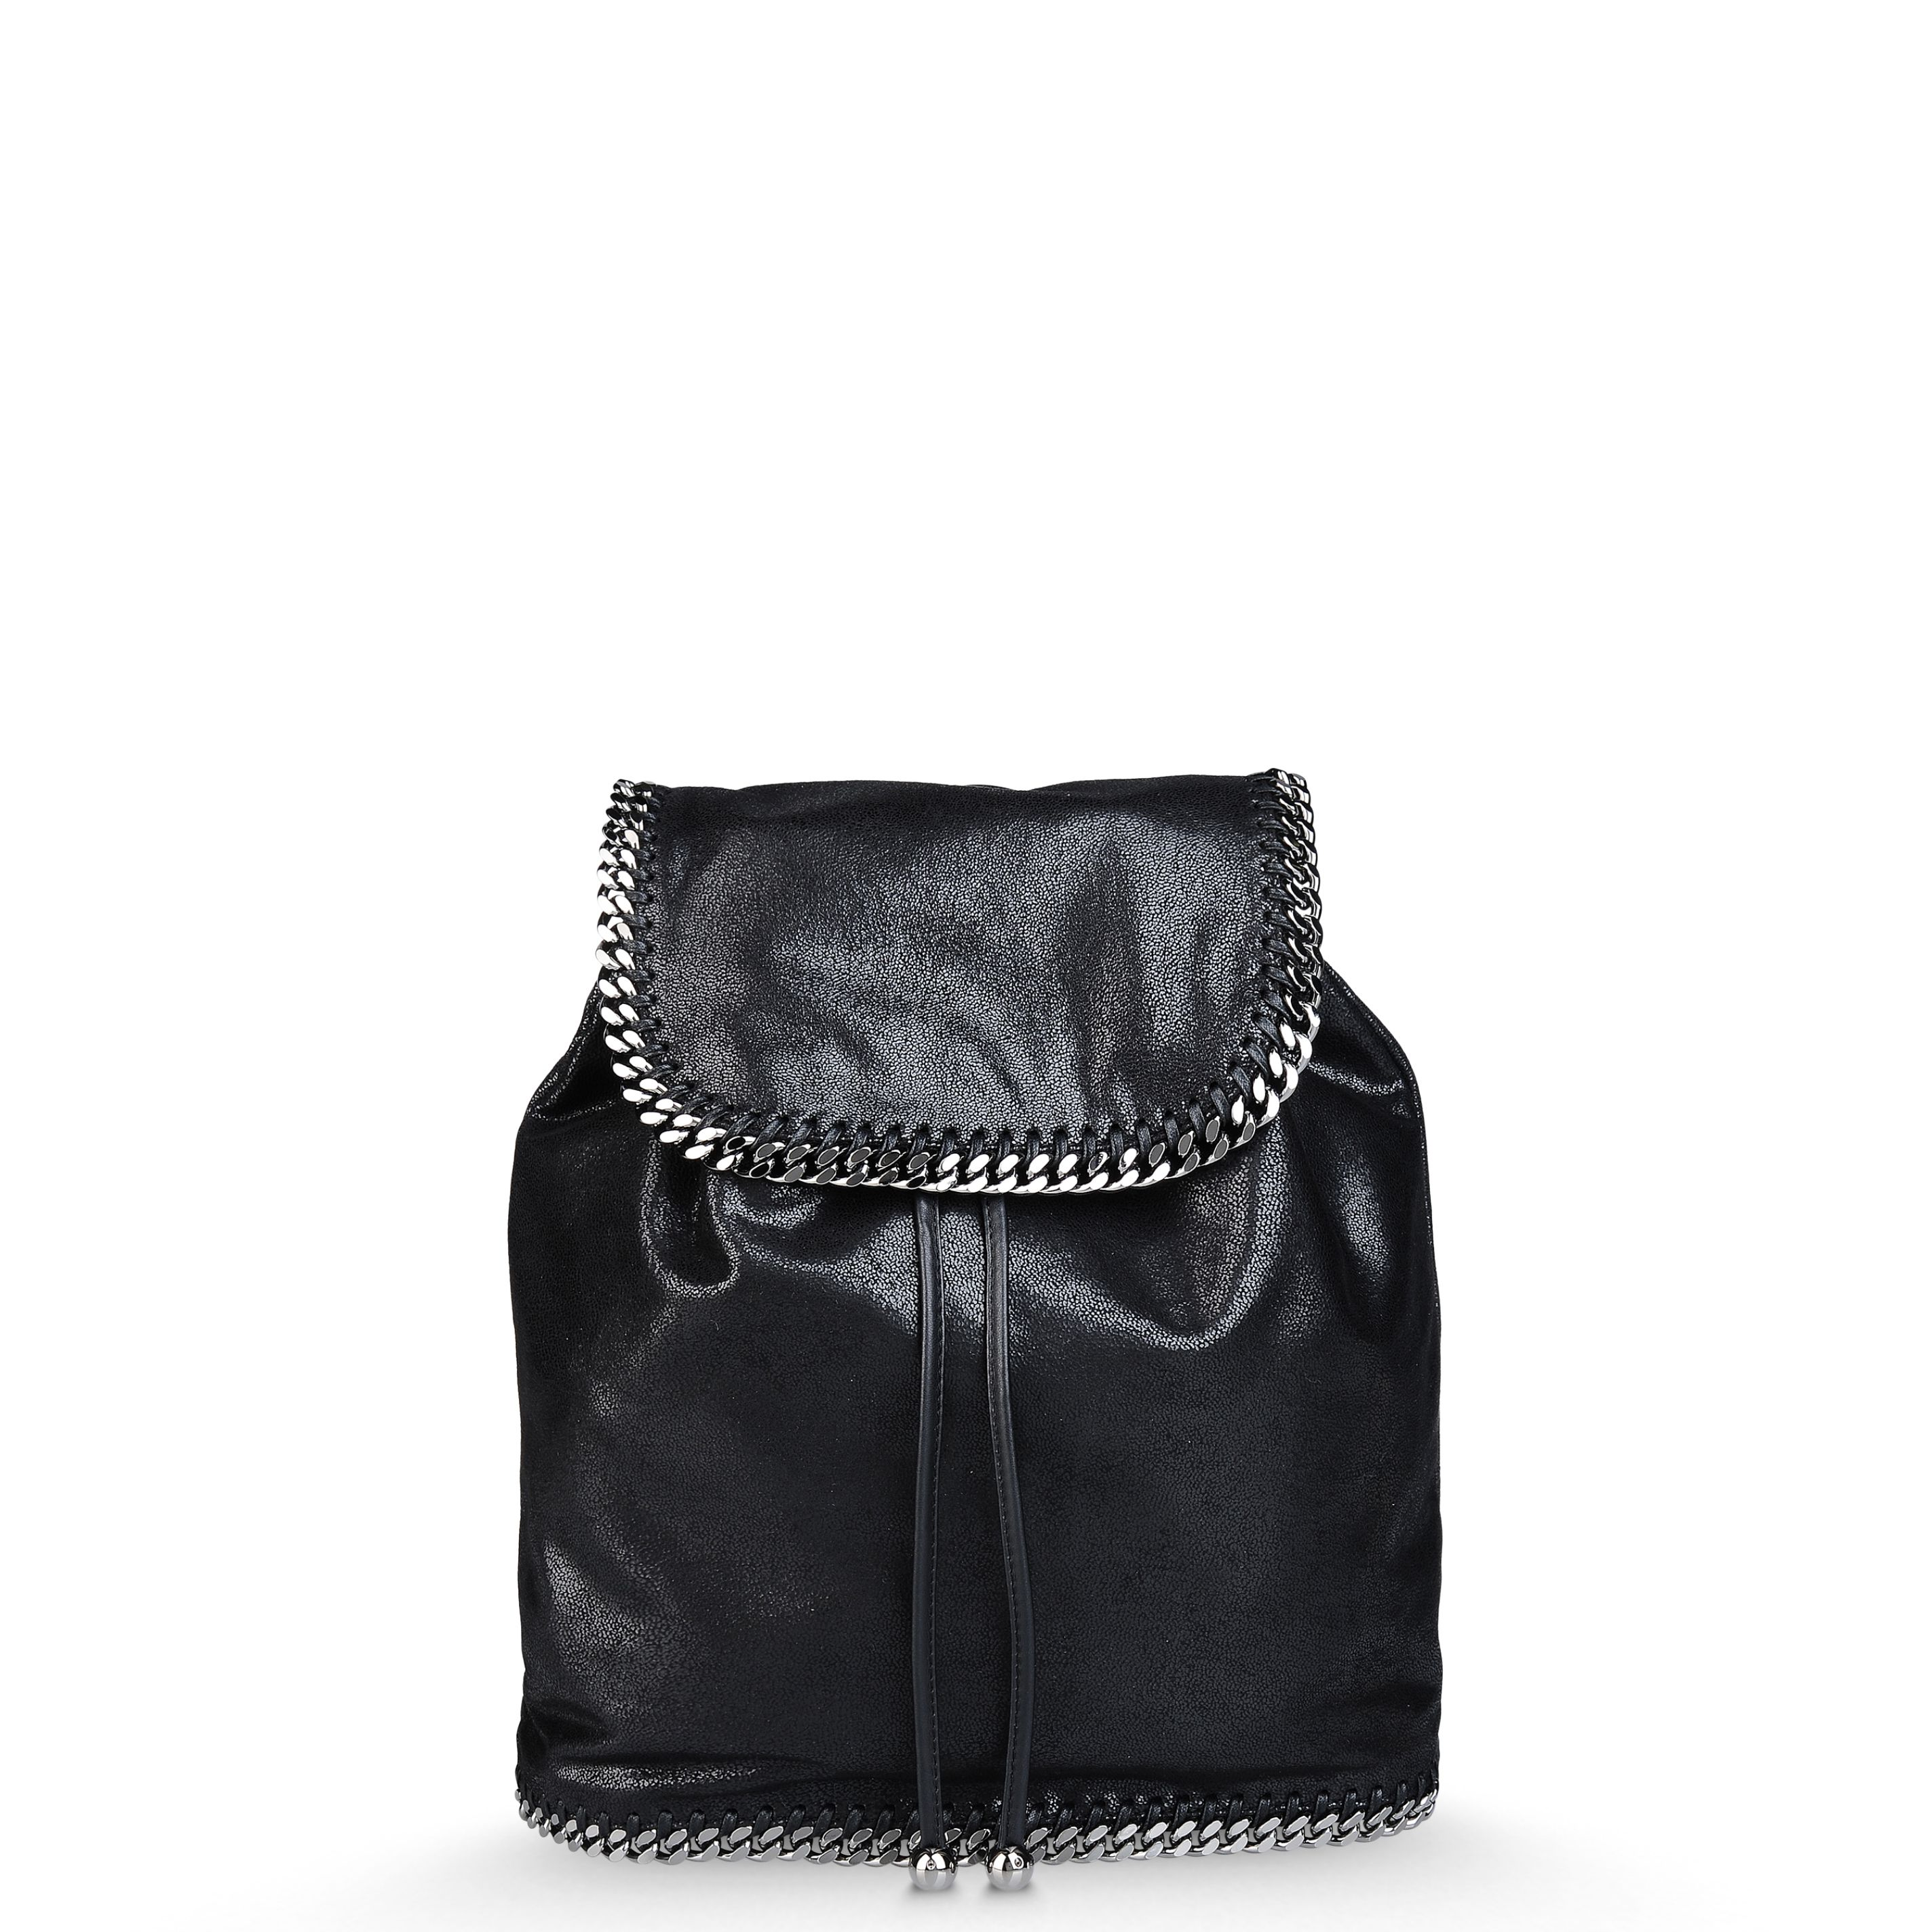 Women's STELLA McCARTNEY Shoulder bag - Handbags - Shop on the Official Online Store